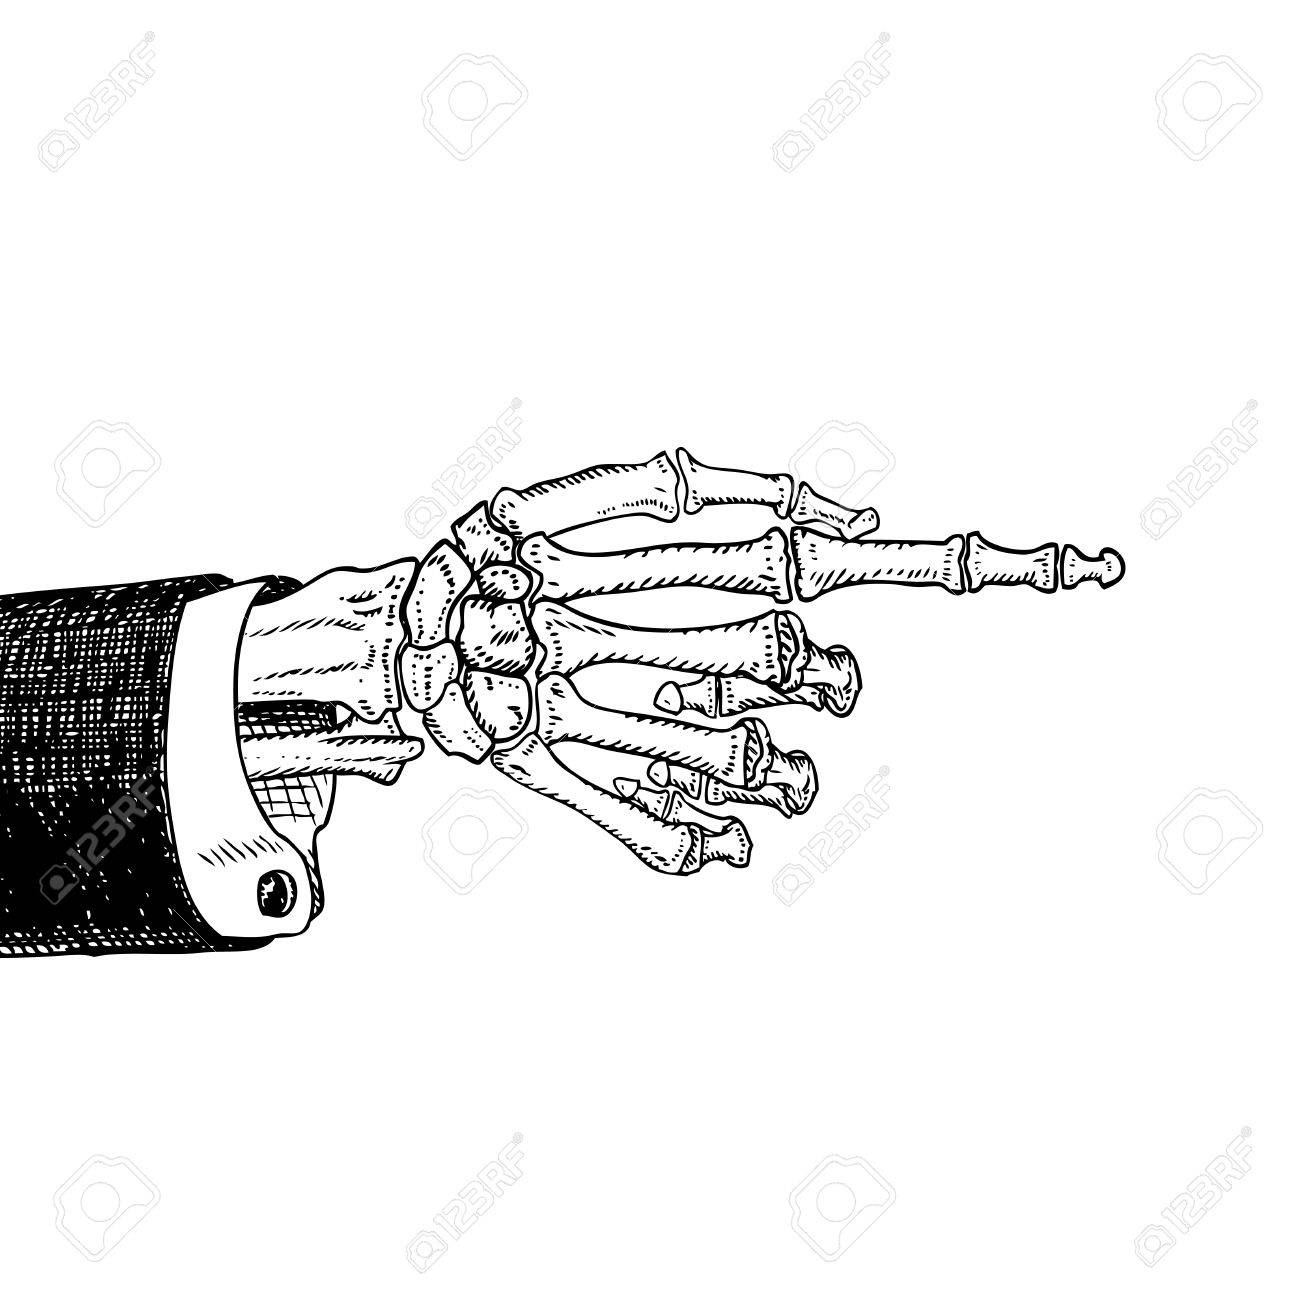 1299x1300 Scary Skeleton Hand Pointing, Hand Drawn Sketch, Black And White